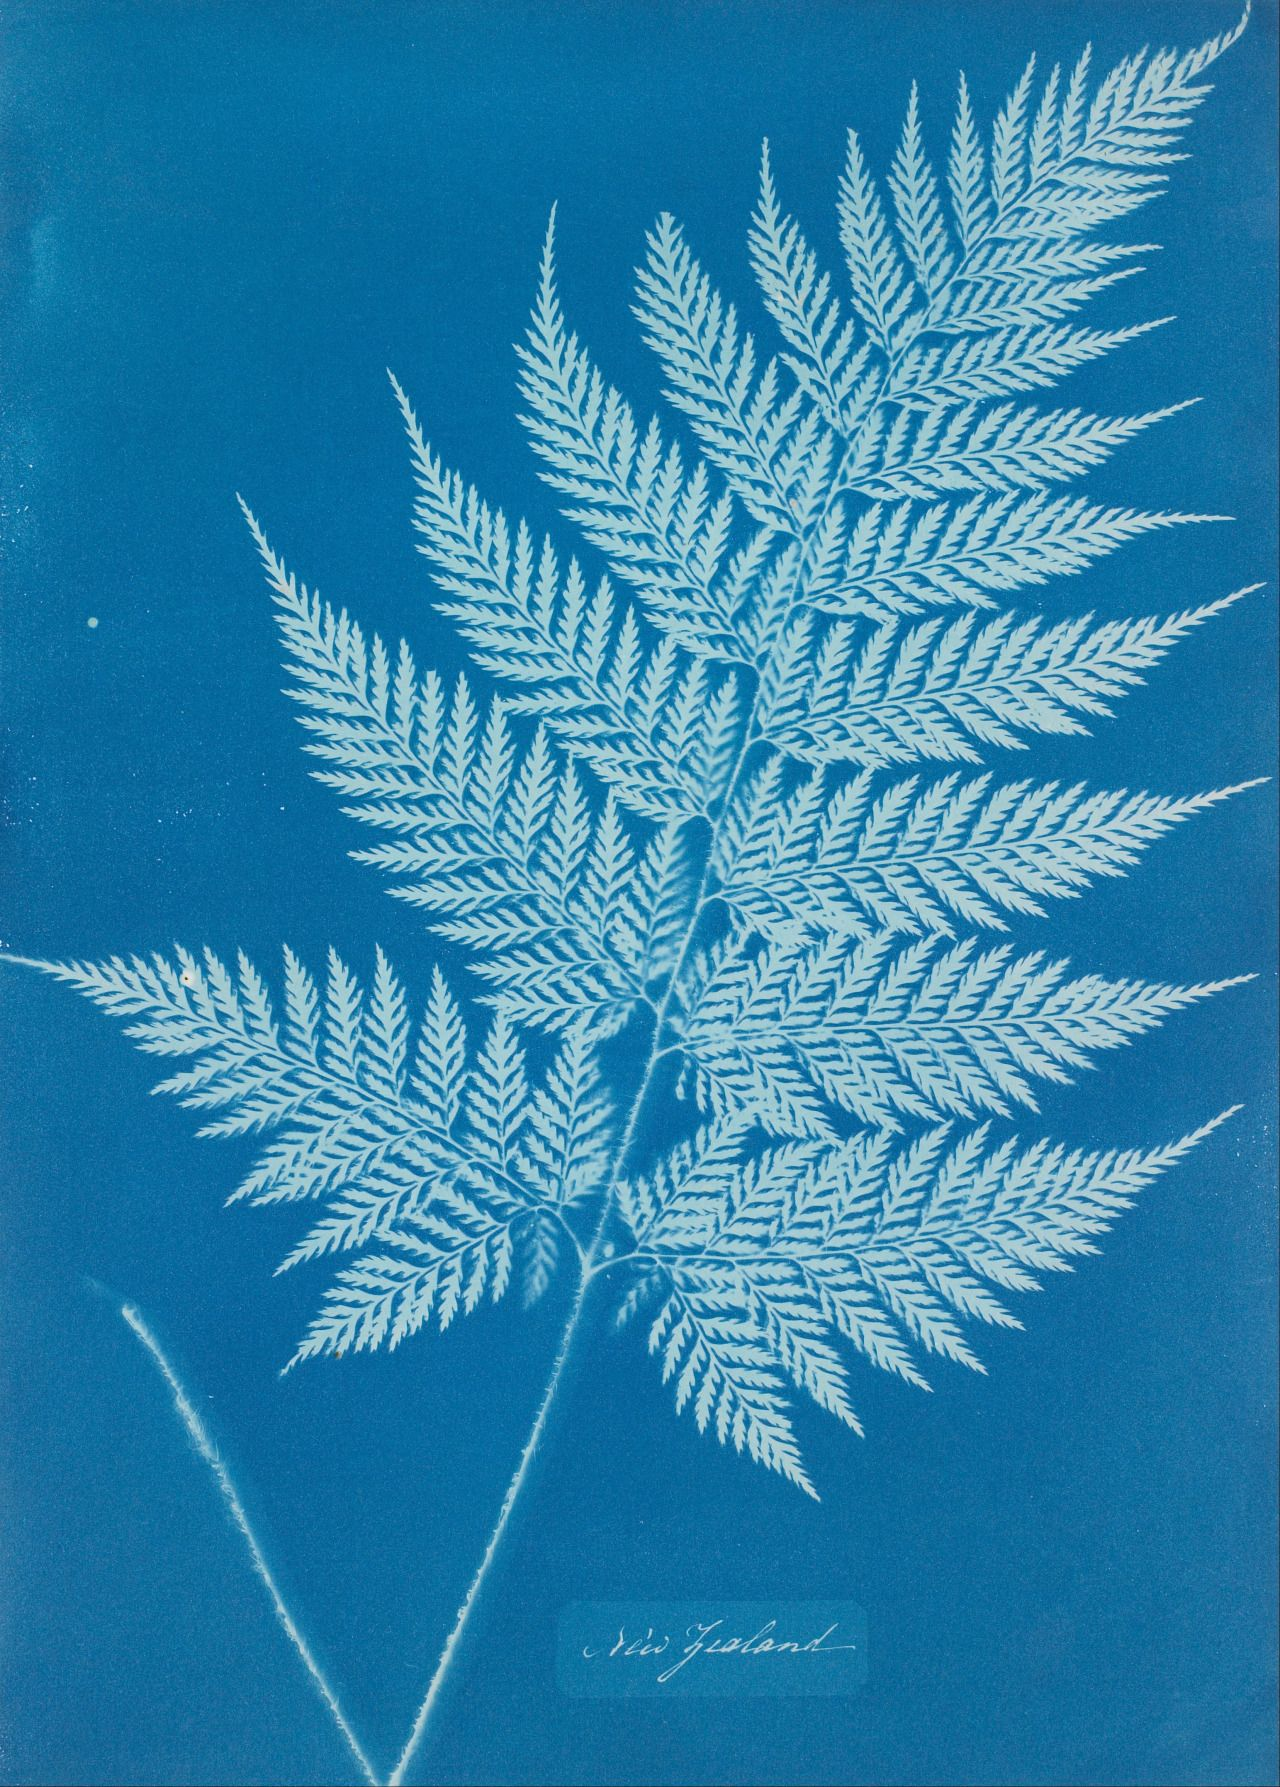 This is by Anna Atkins, one of the first female photographers. This is an example of what is called a cyanotype.